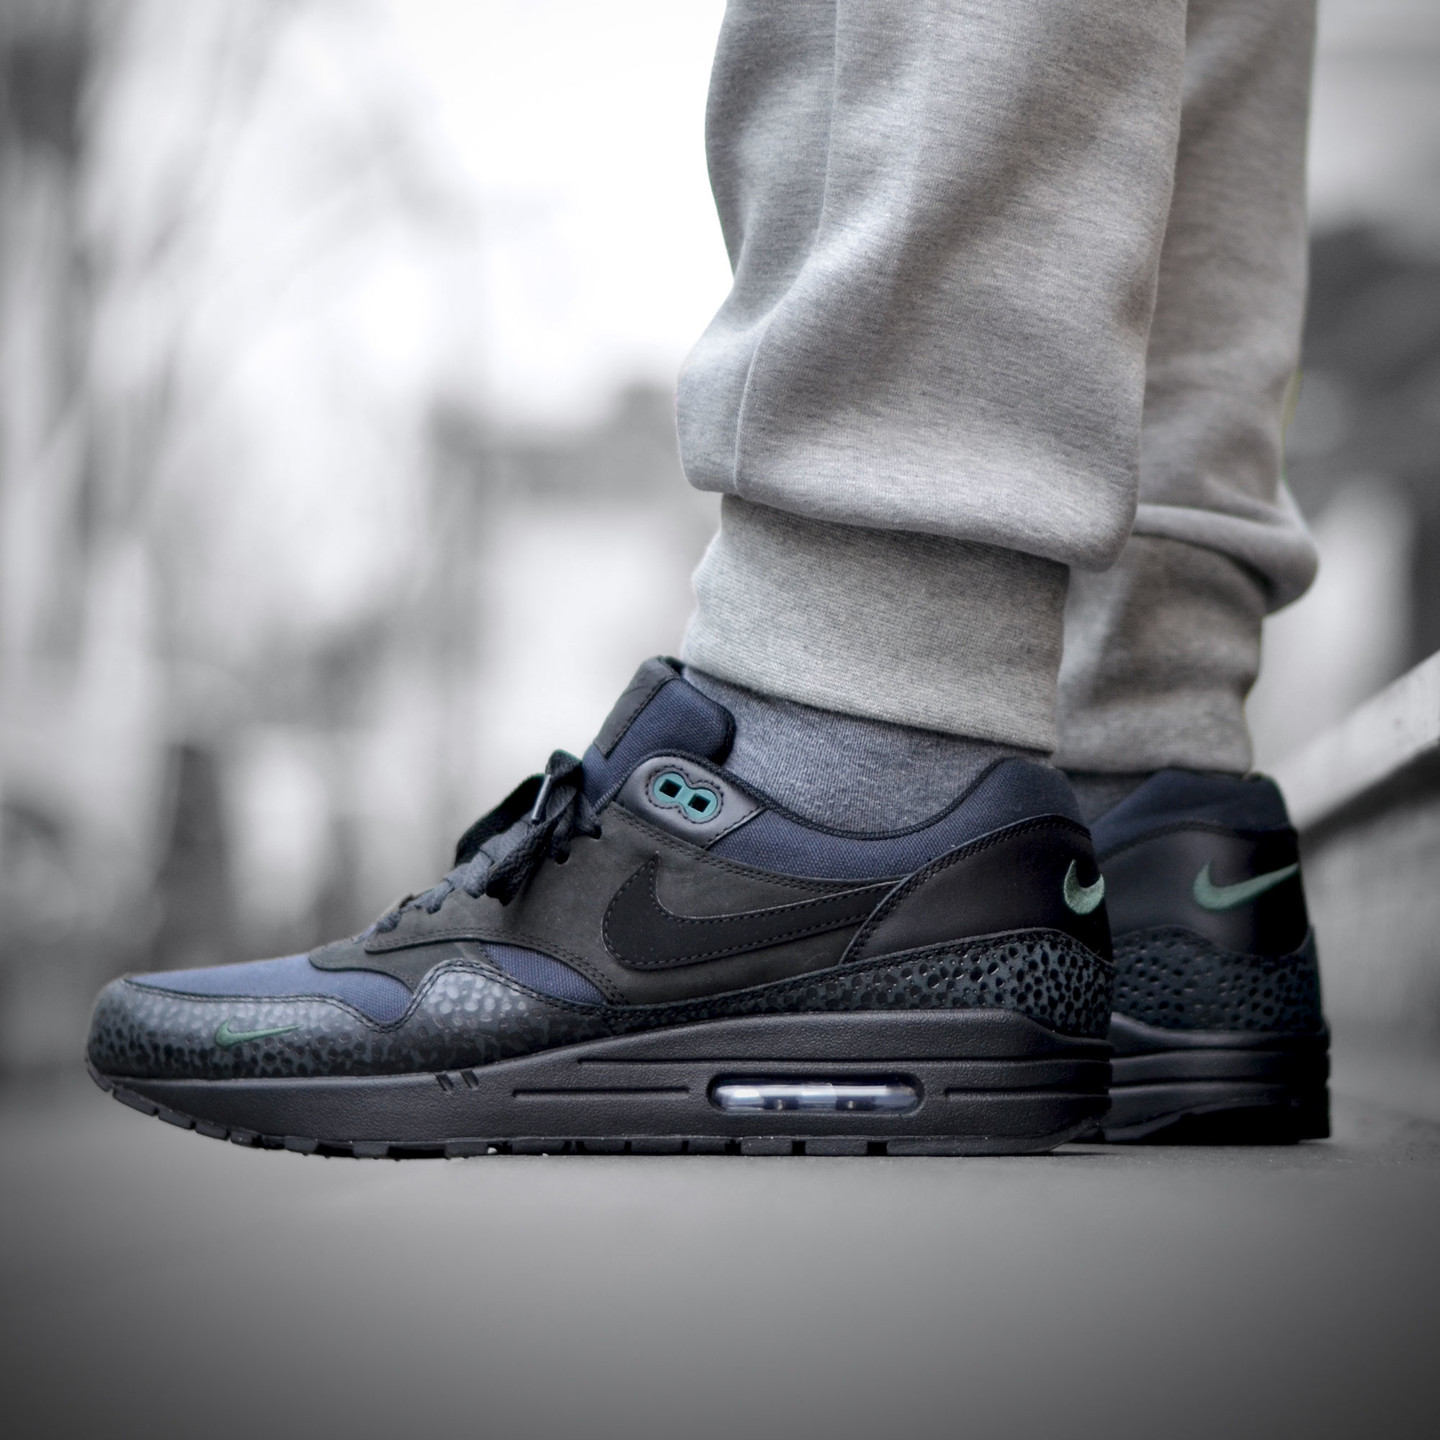 Nike Air Max 1 Premium 'Bonsai Safari' Black / Black / Bonsai 512033-030-45.5